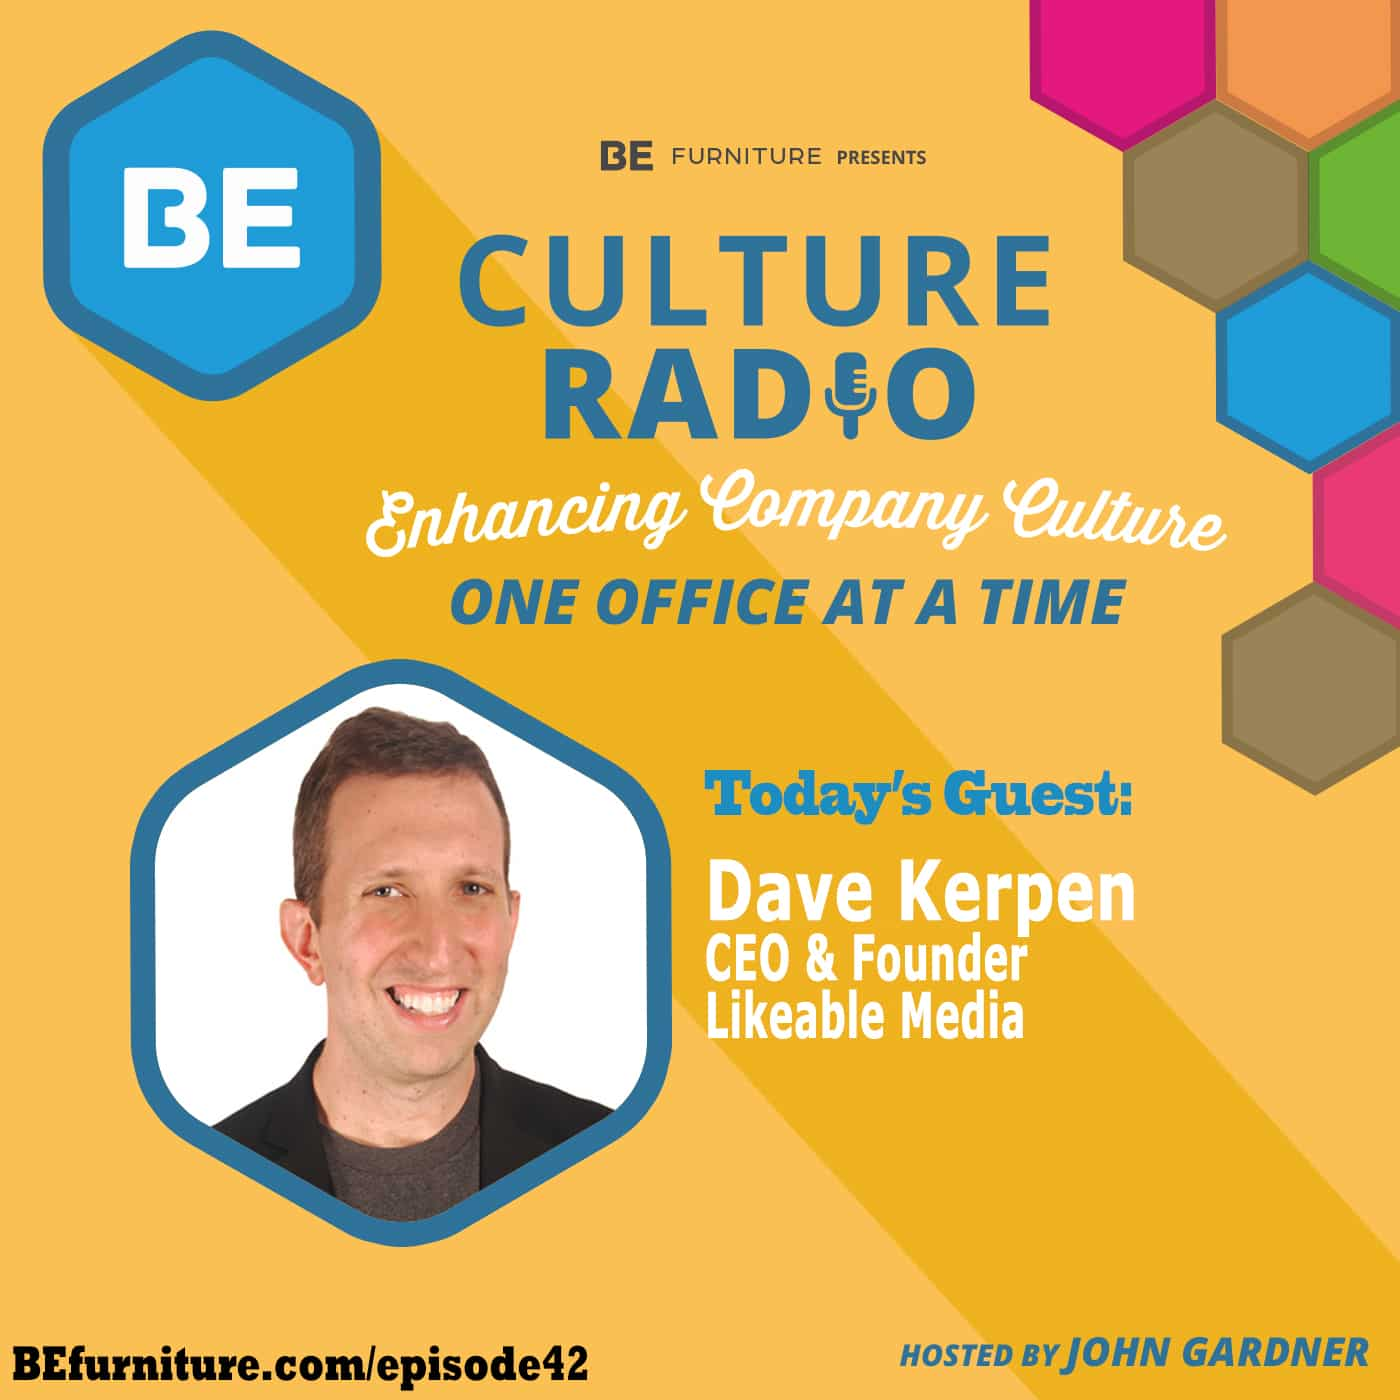 Dave Kerpen - CEO & Founder, Likeable Media